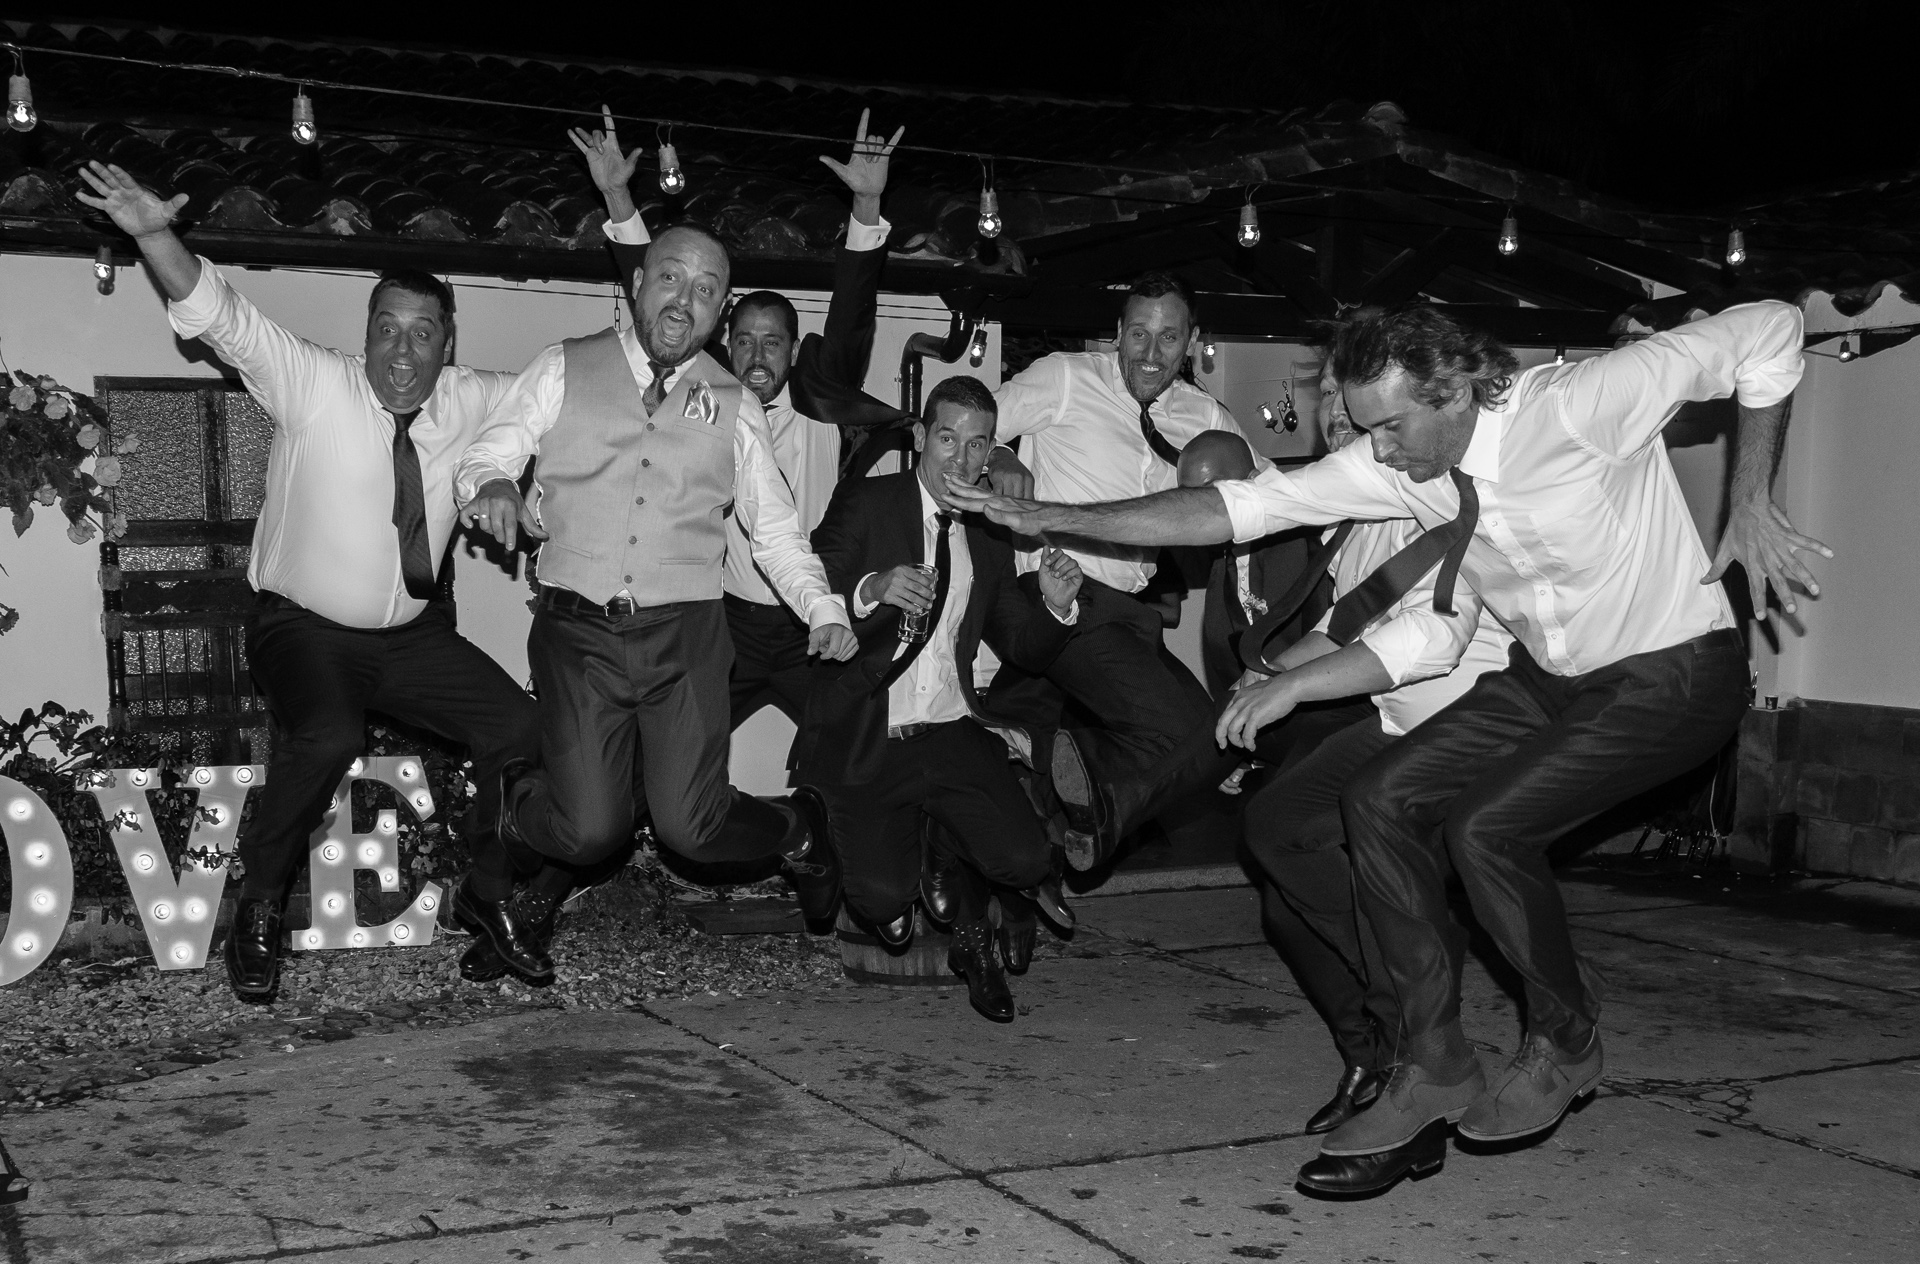 The Groomsmen Celebrate - Monochrome Print (Open) - Bob Muschewske